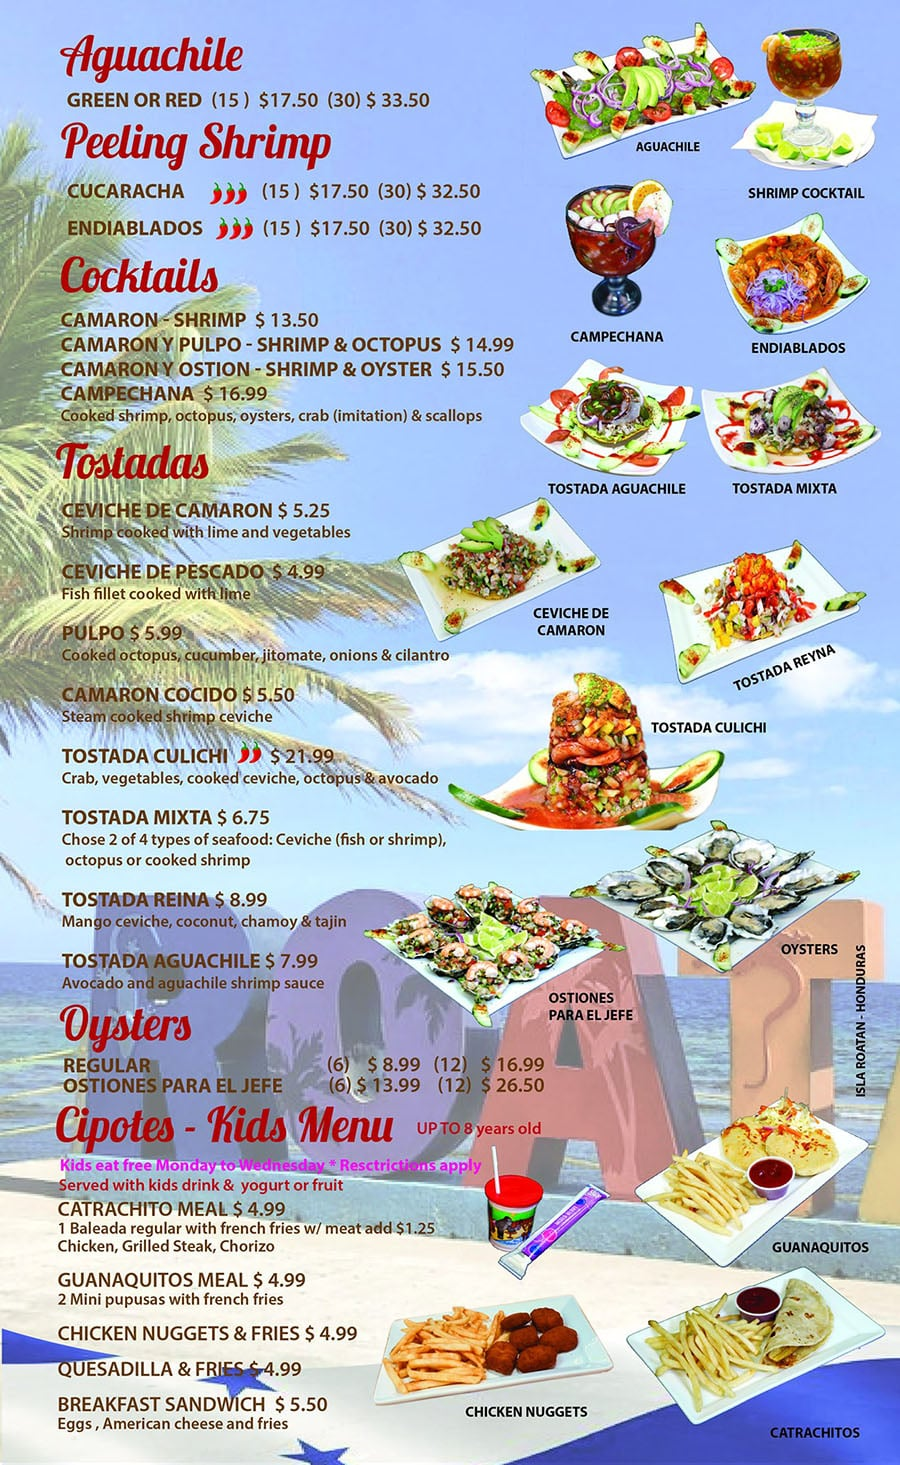 Catrachos Restaurant menu - other seafood and more